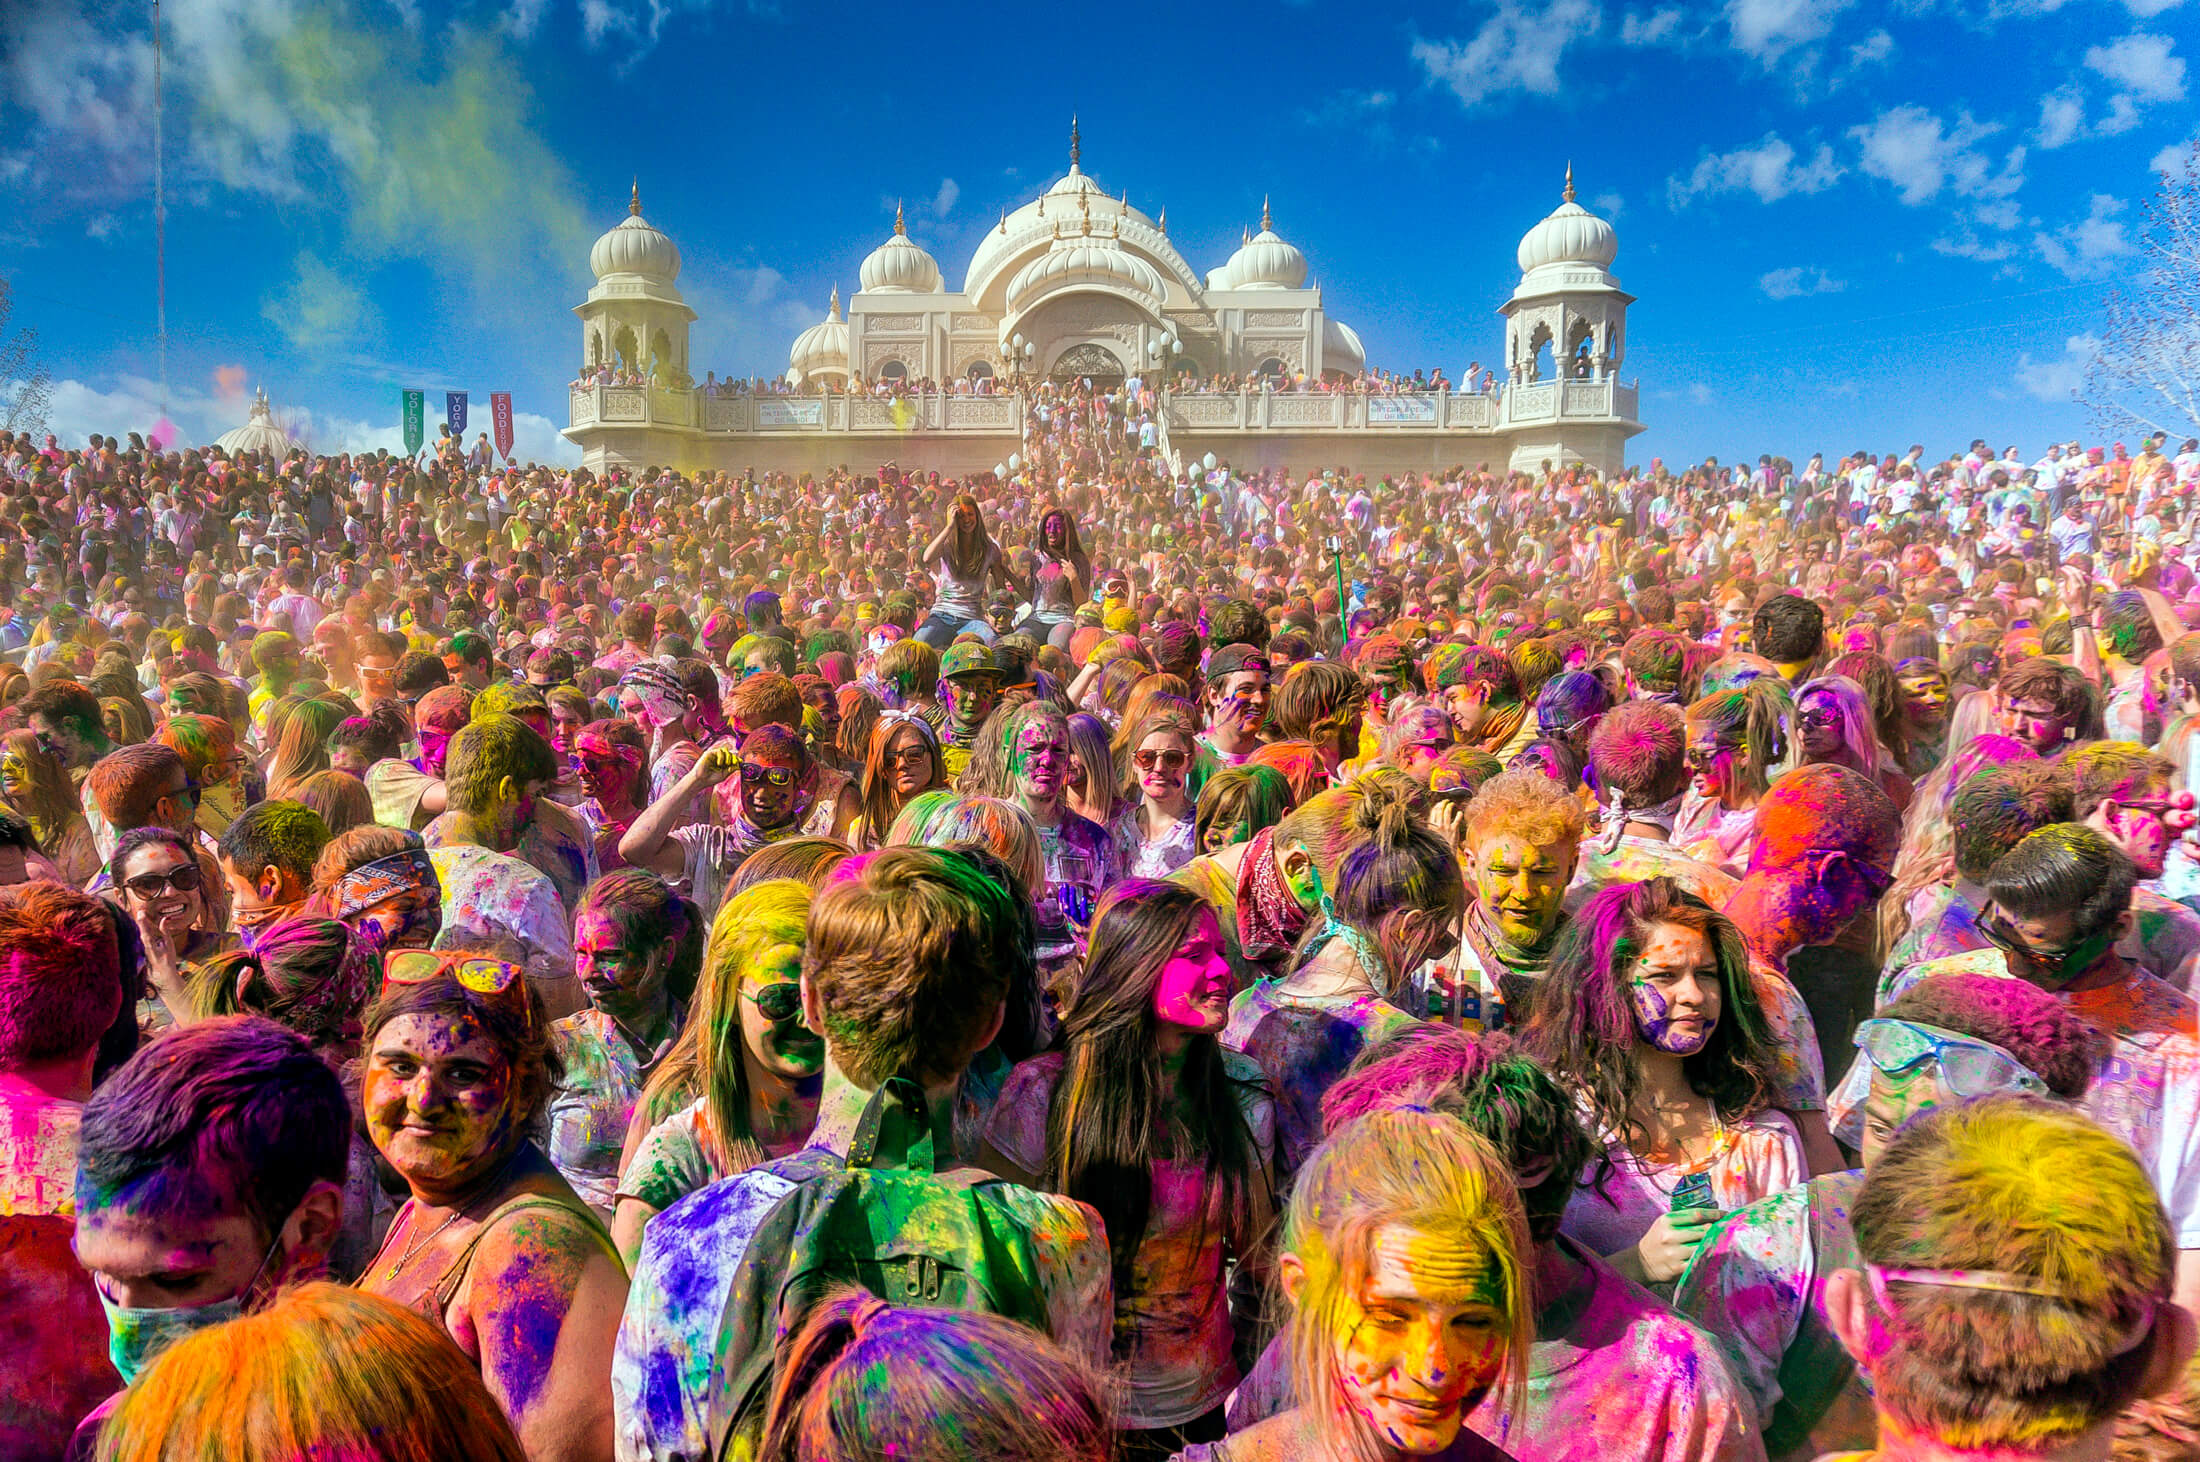 Top 7 Places To Celebrate Holi In India